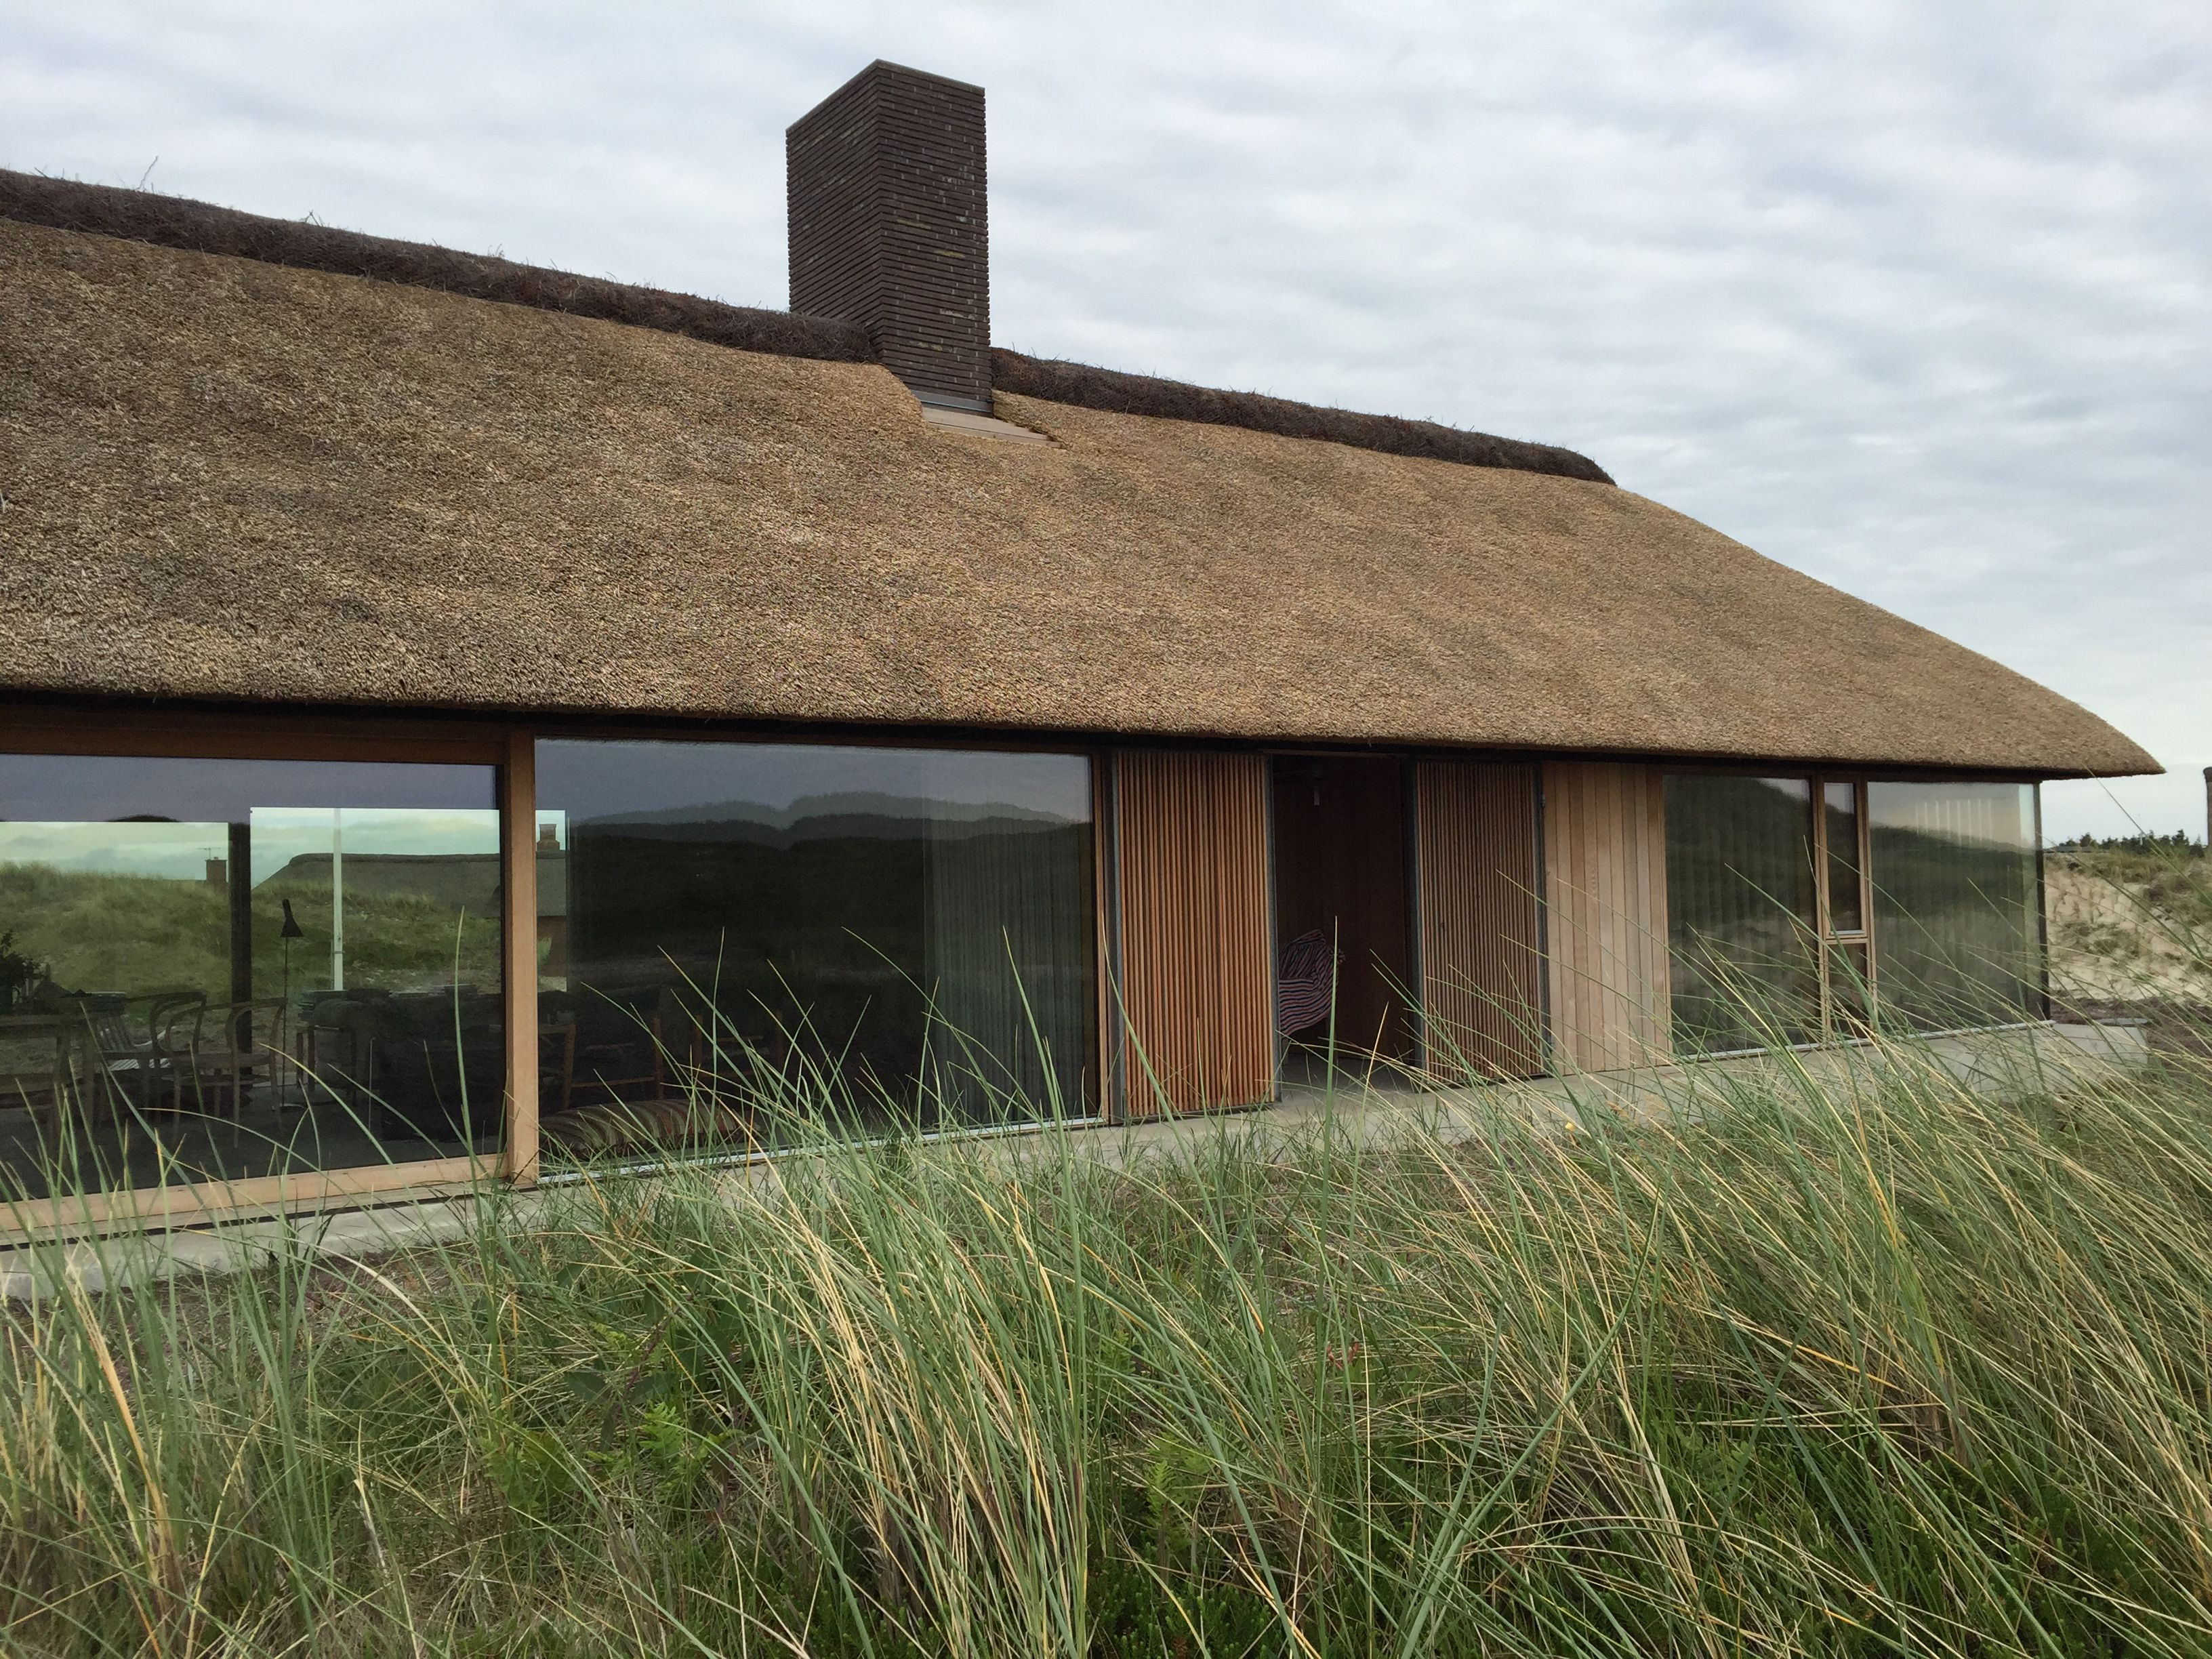 Sommerhus s ndervig modern take on thatched roof danish for Contemporary roof